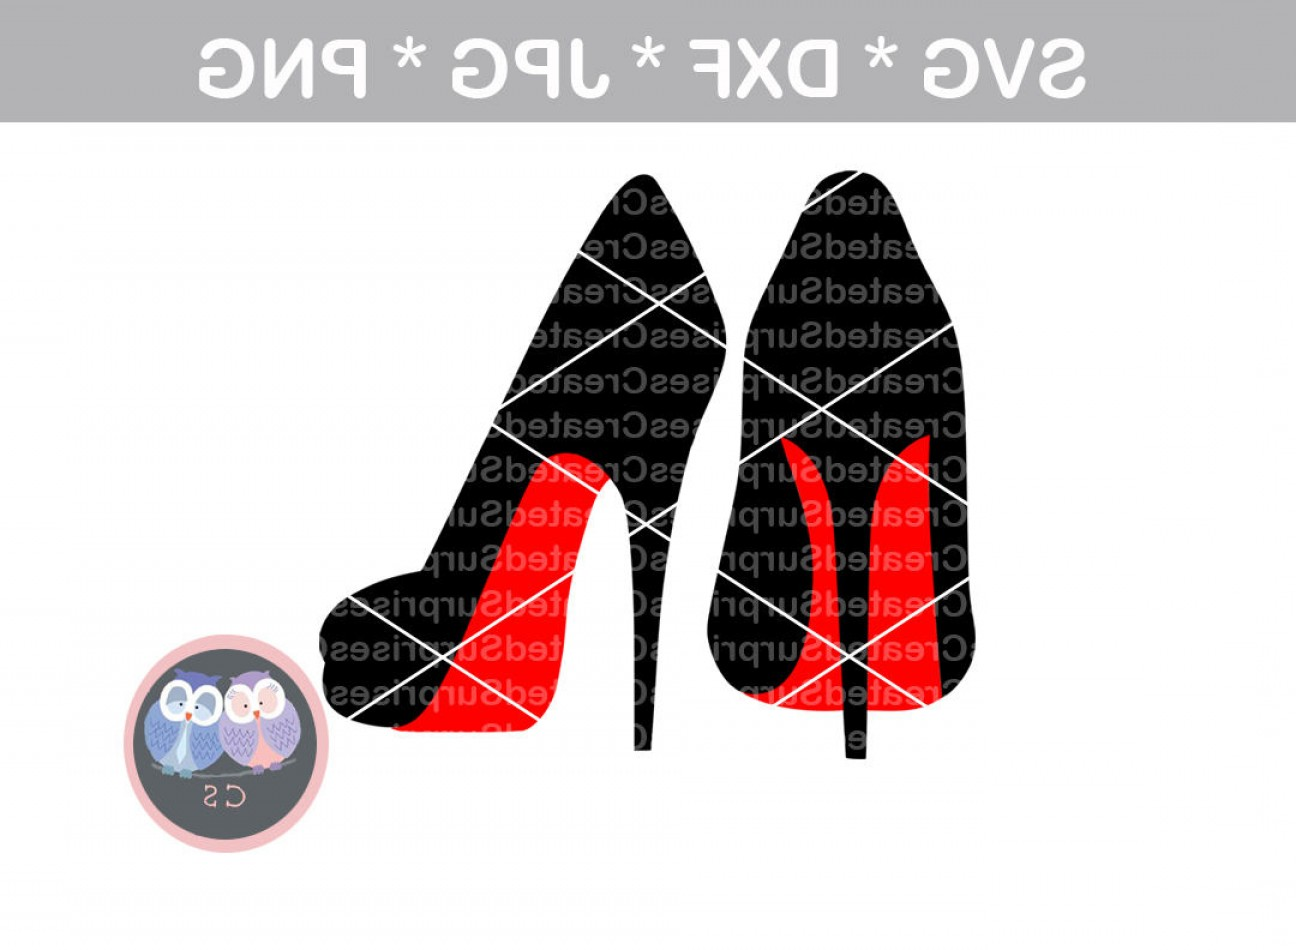 Silhouette Hee High Vector Lsitleetios: Angled High Heels Pumps Stilettos Red